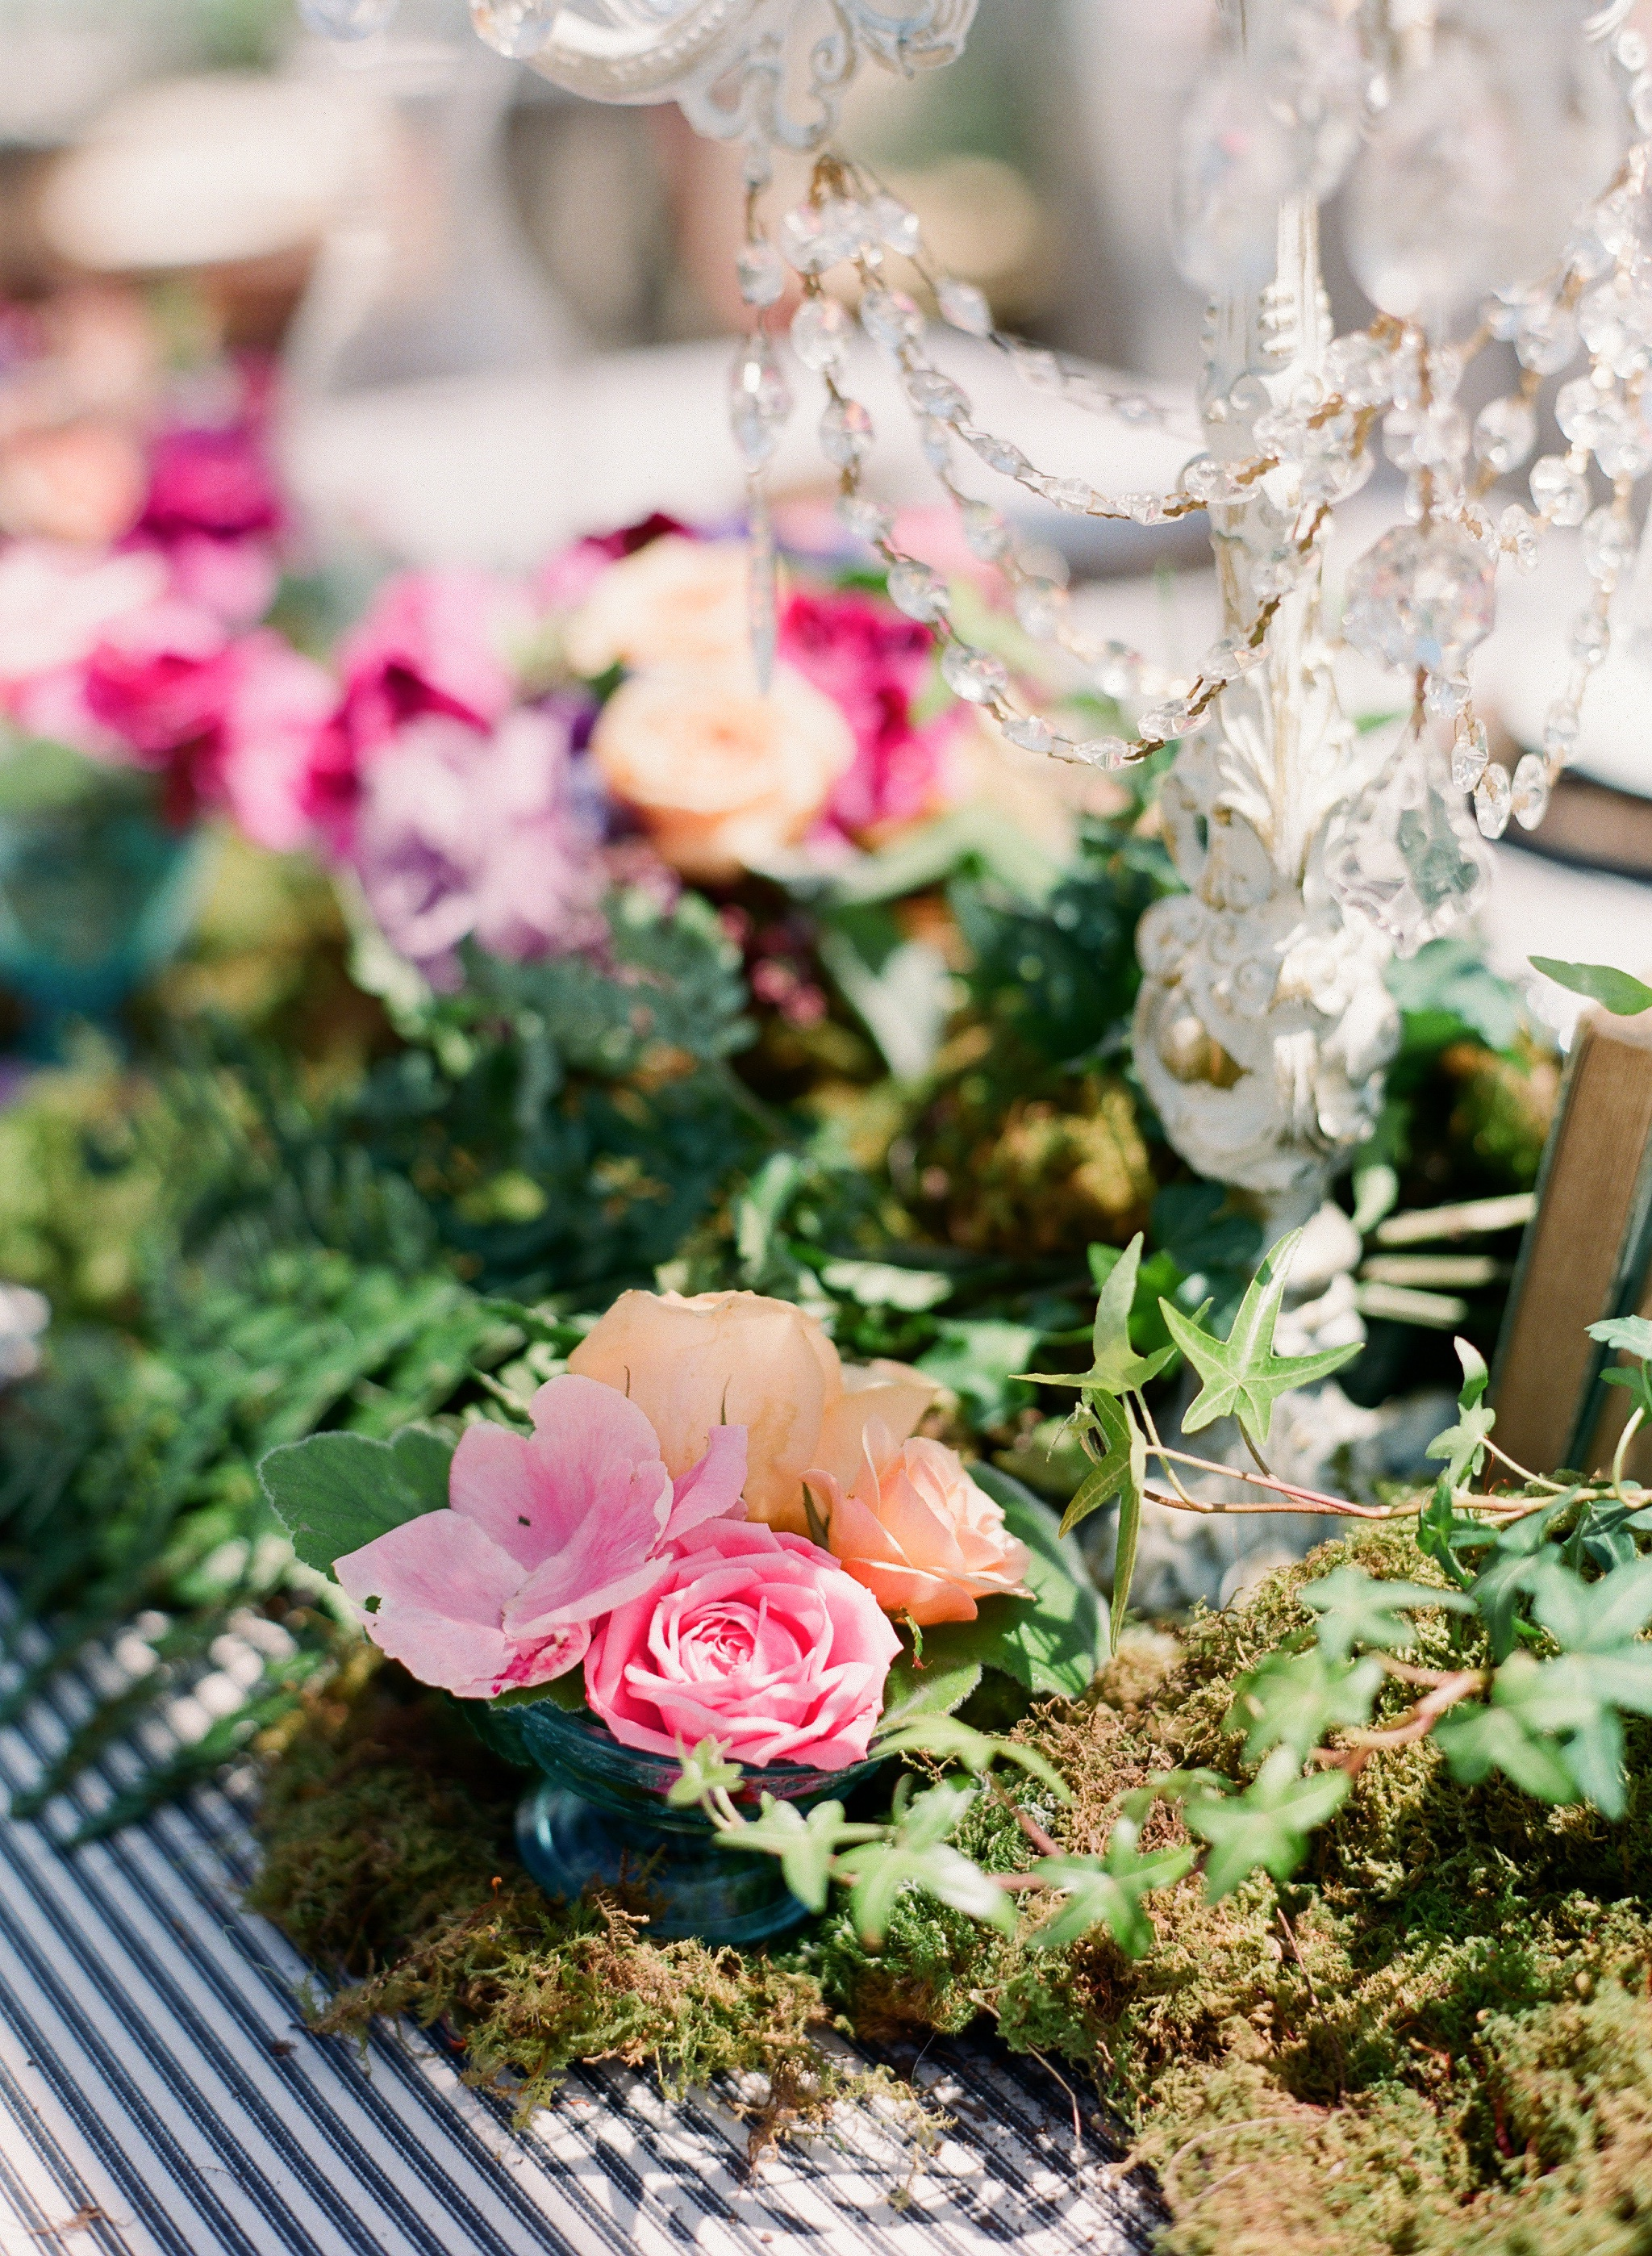 Styled-wedding-beaux-arts-tea-time-monique-lhuillier-santa-barbara-chic-table-setting-flowers-pink-moss-180.original